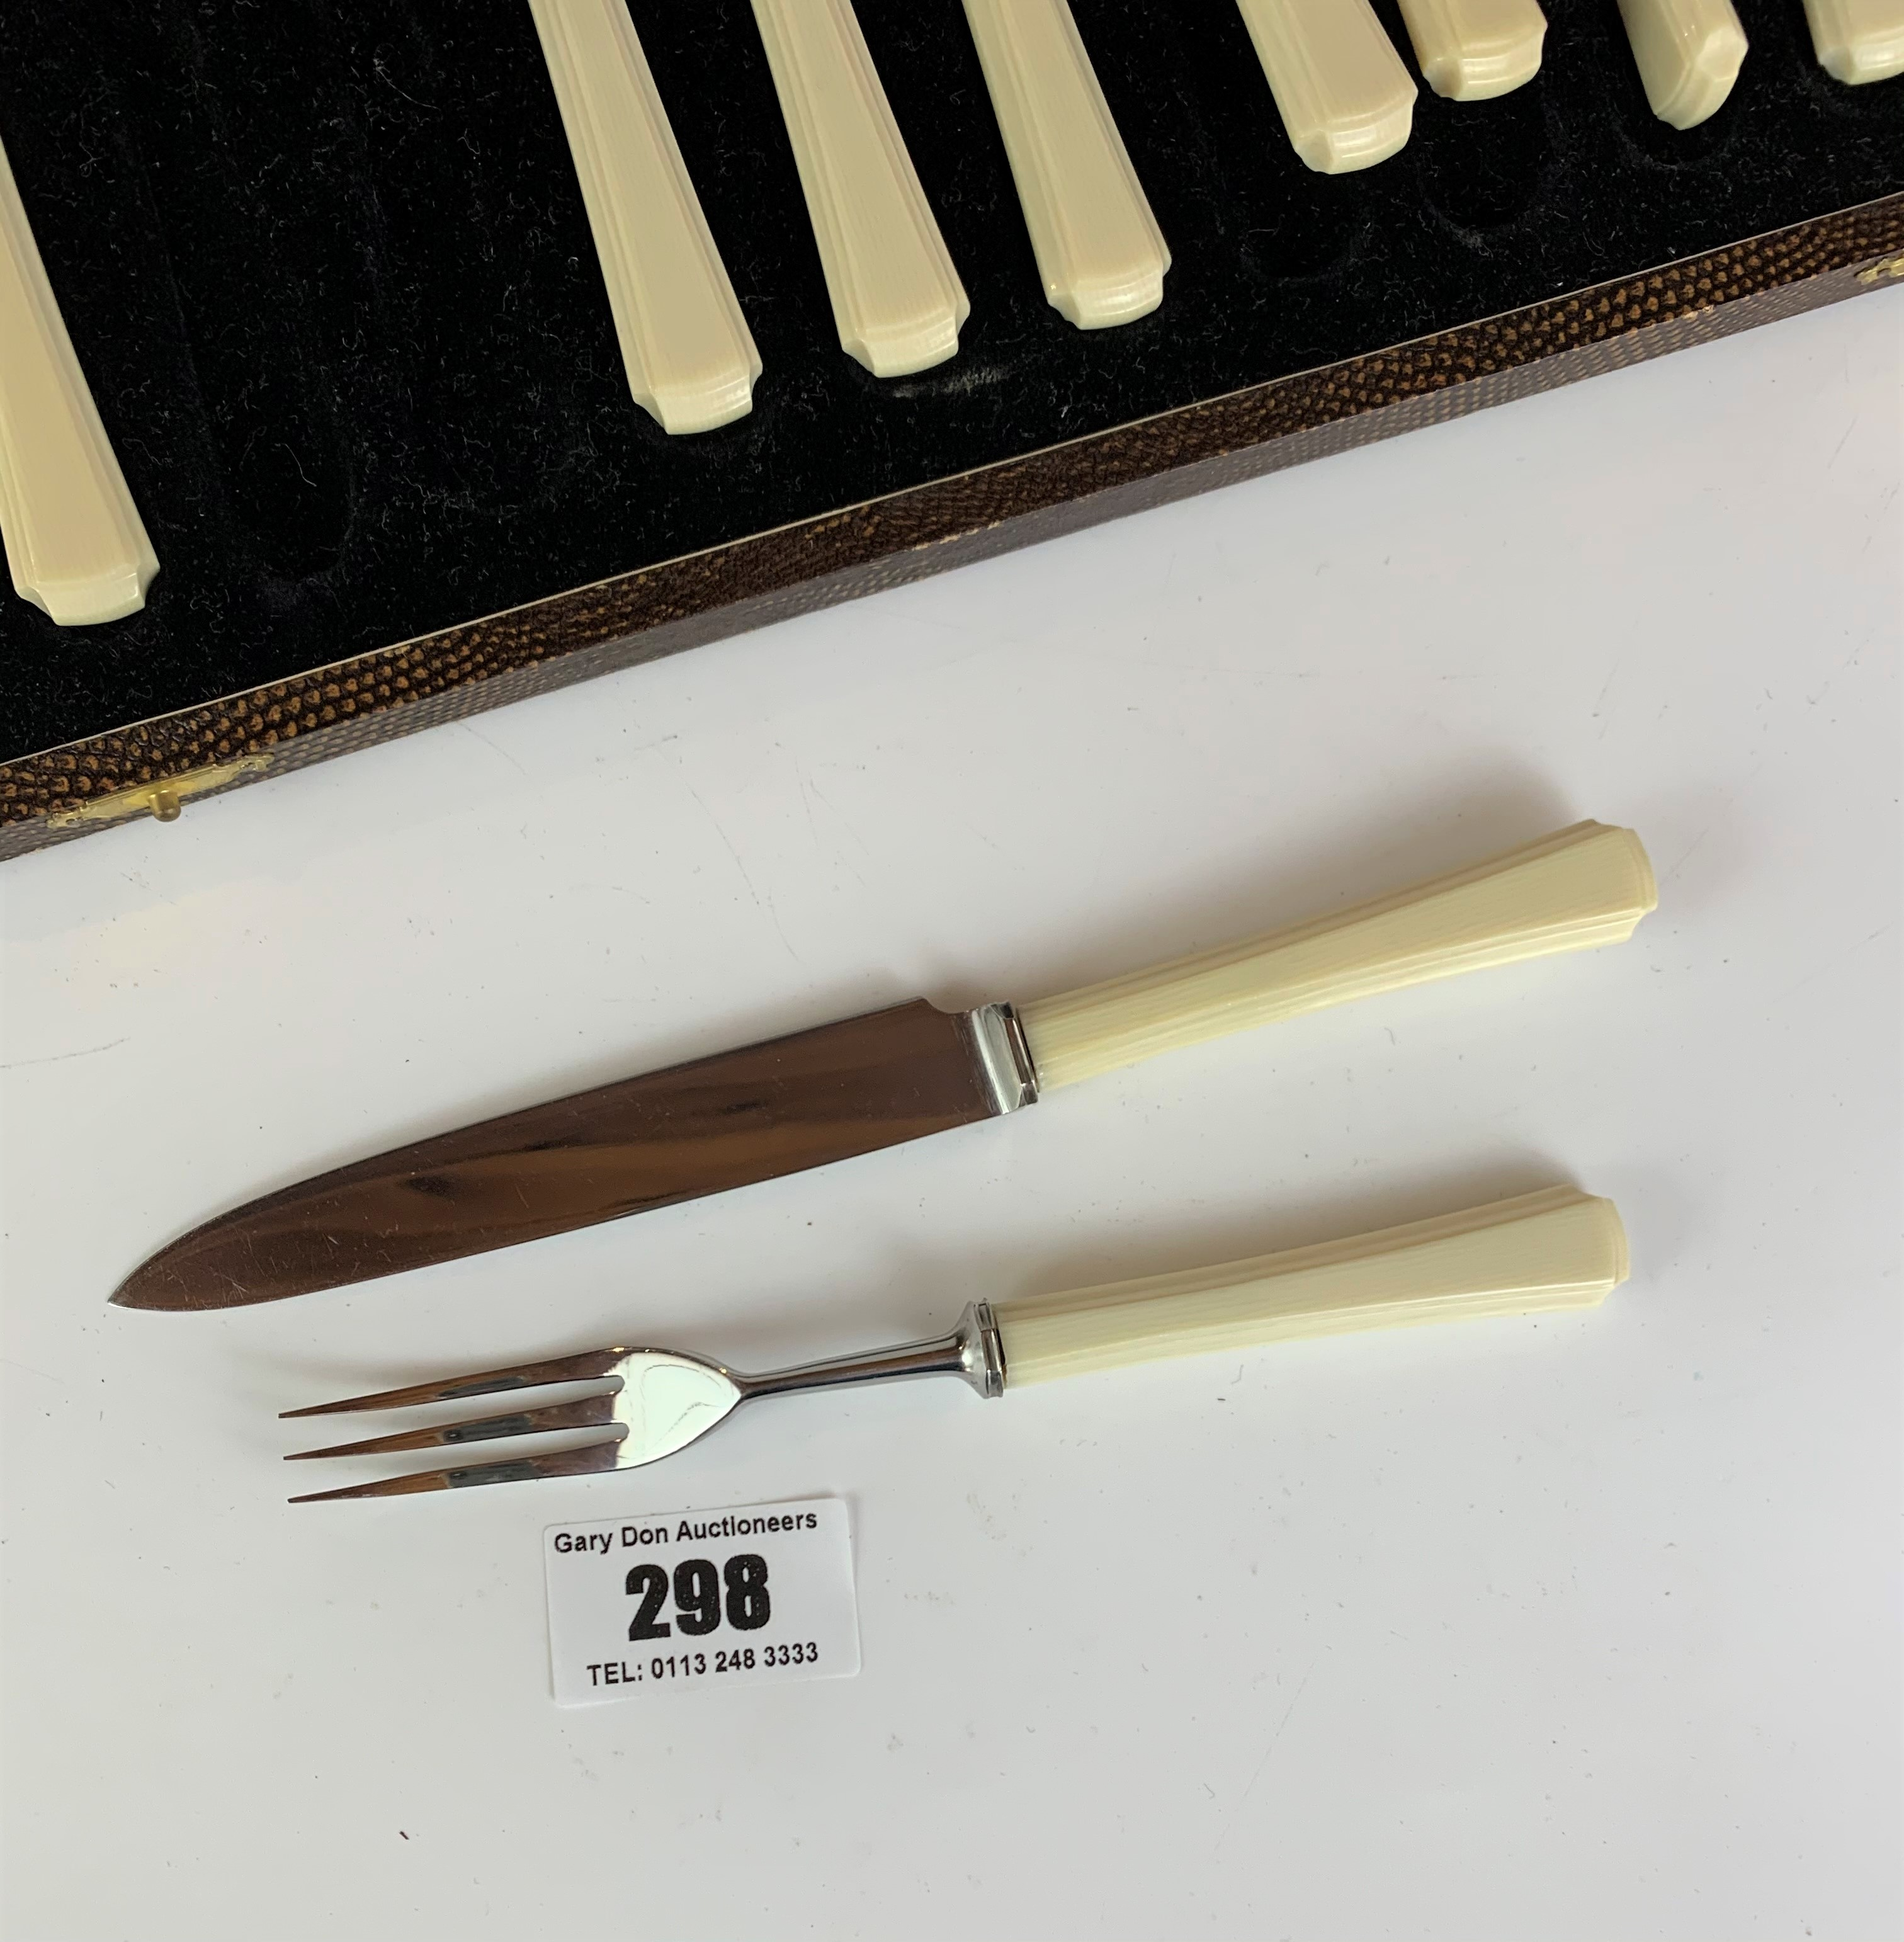 Cased set of 6 stainless steel and cream handled cake knives and forks - Image 6 of 6